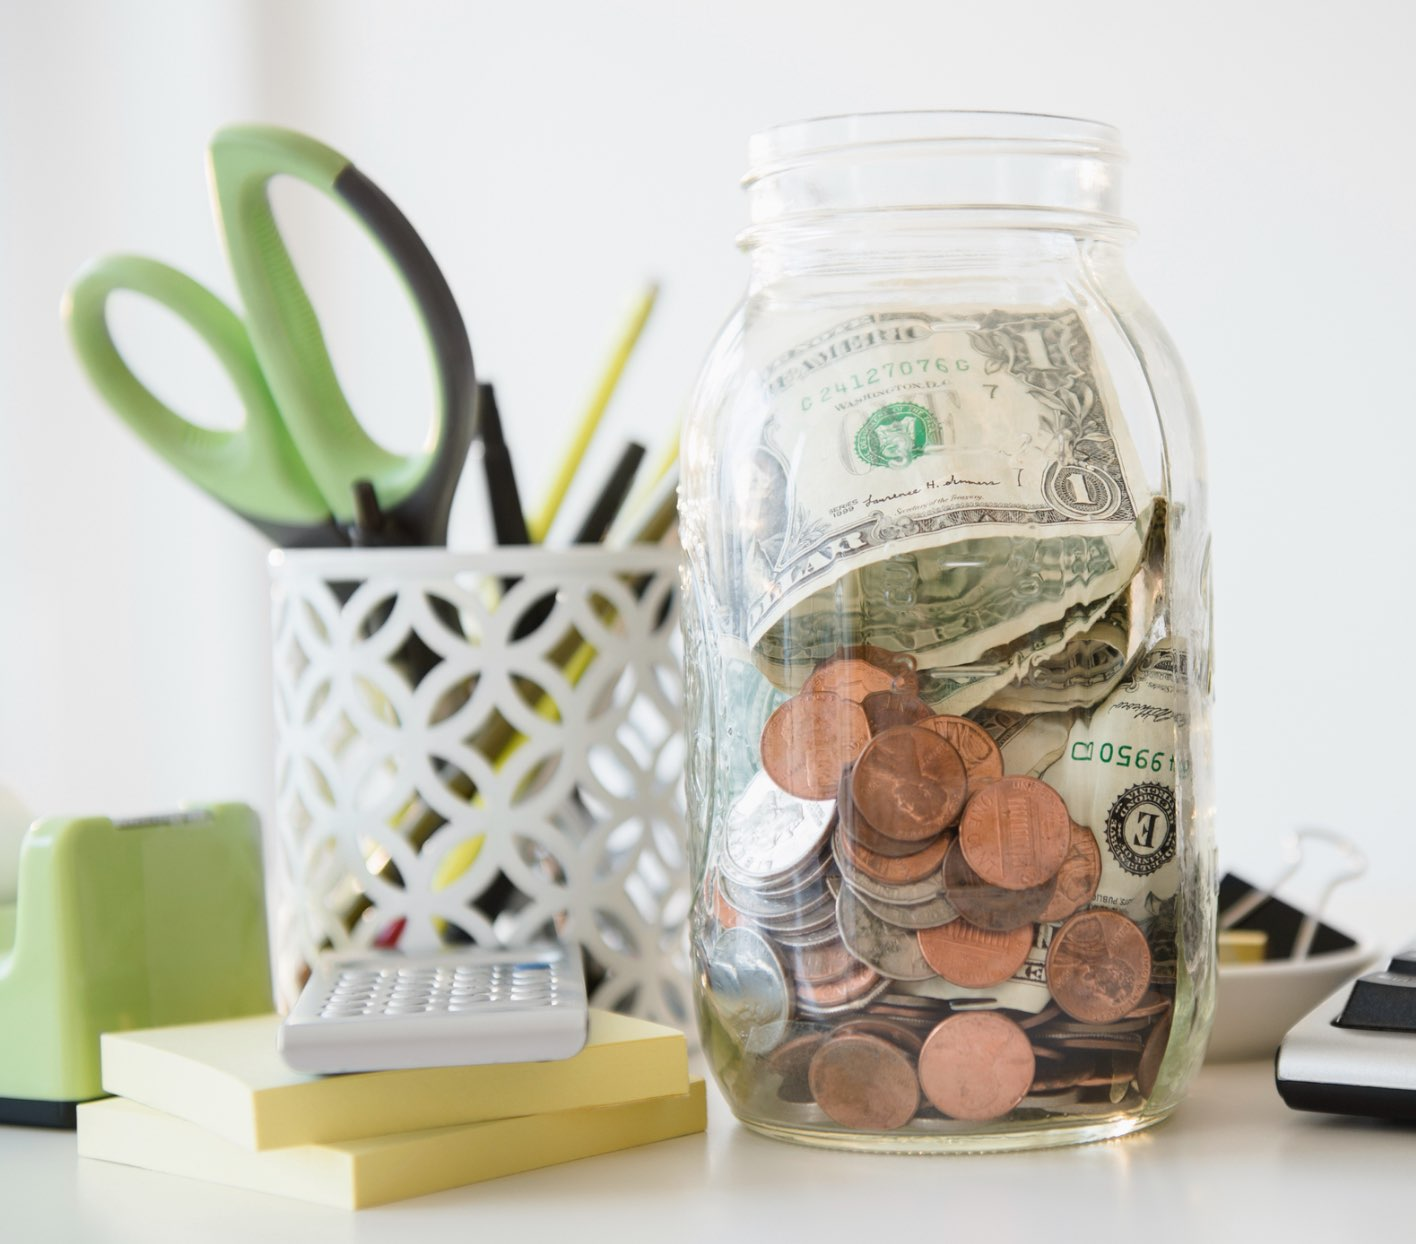 A jar of money and change on a desk.